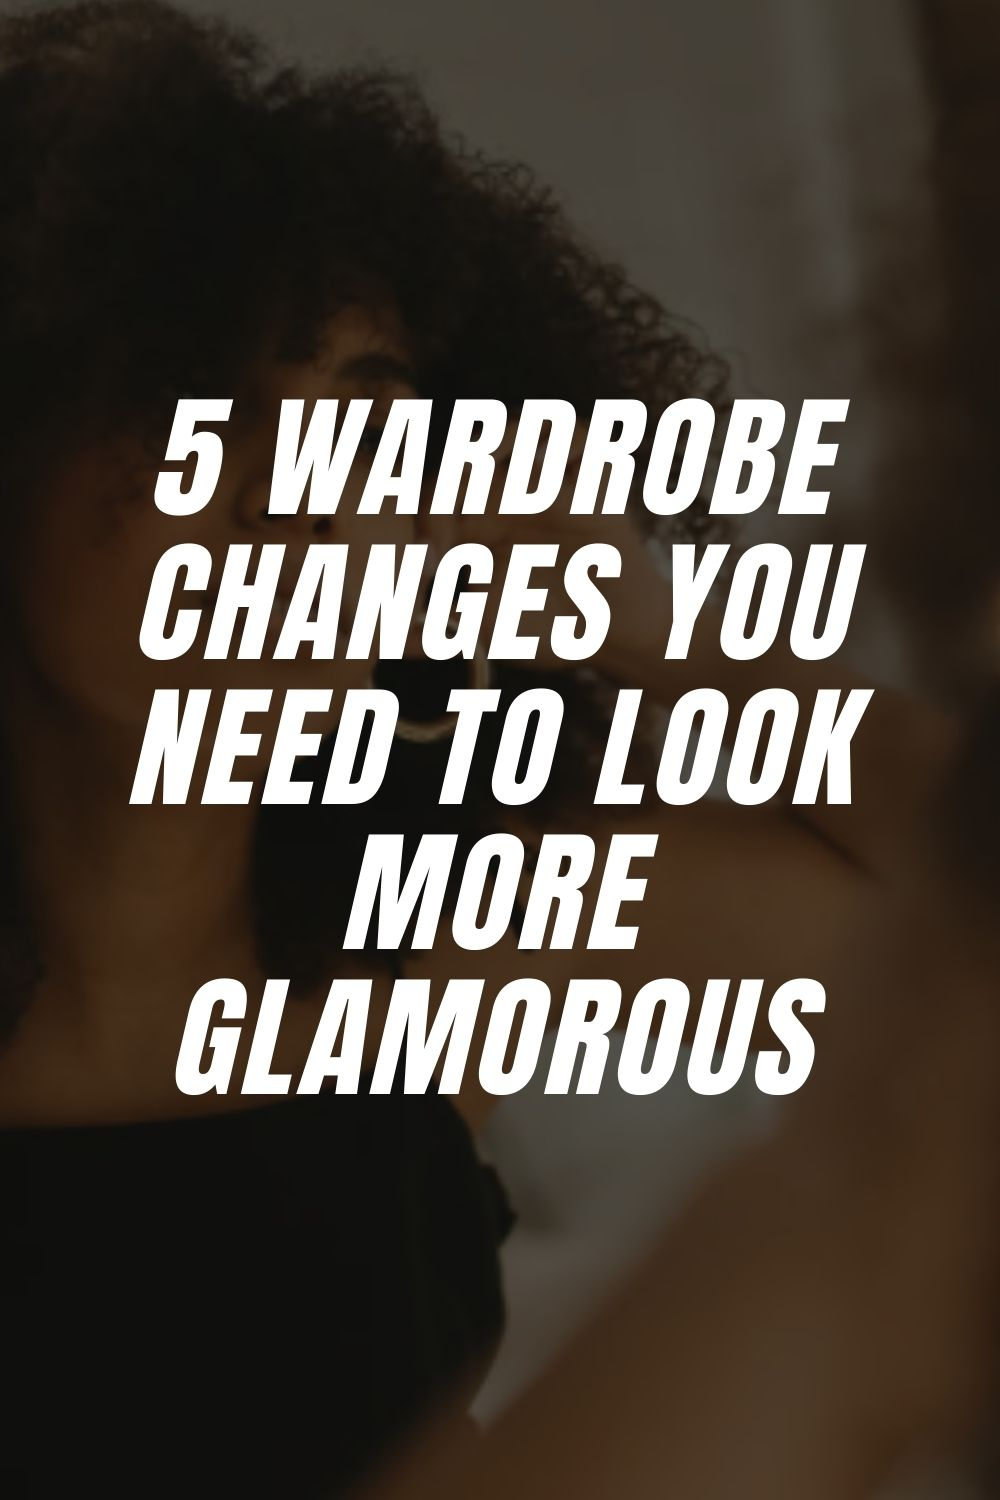 5 Wardrobe Changes You Need to Look More Glamorous